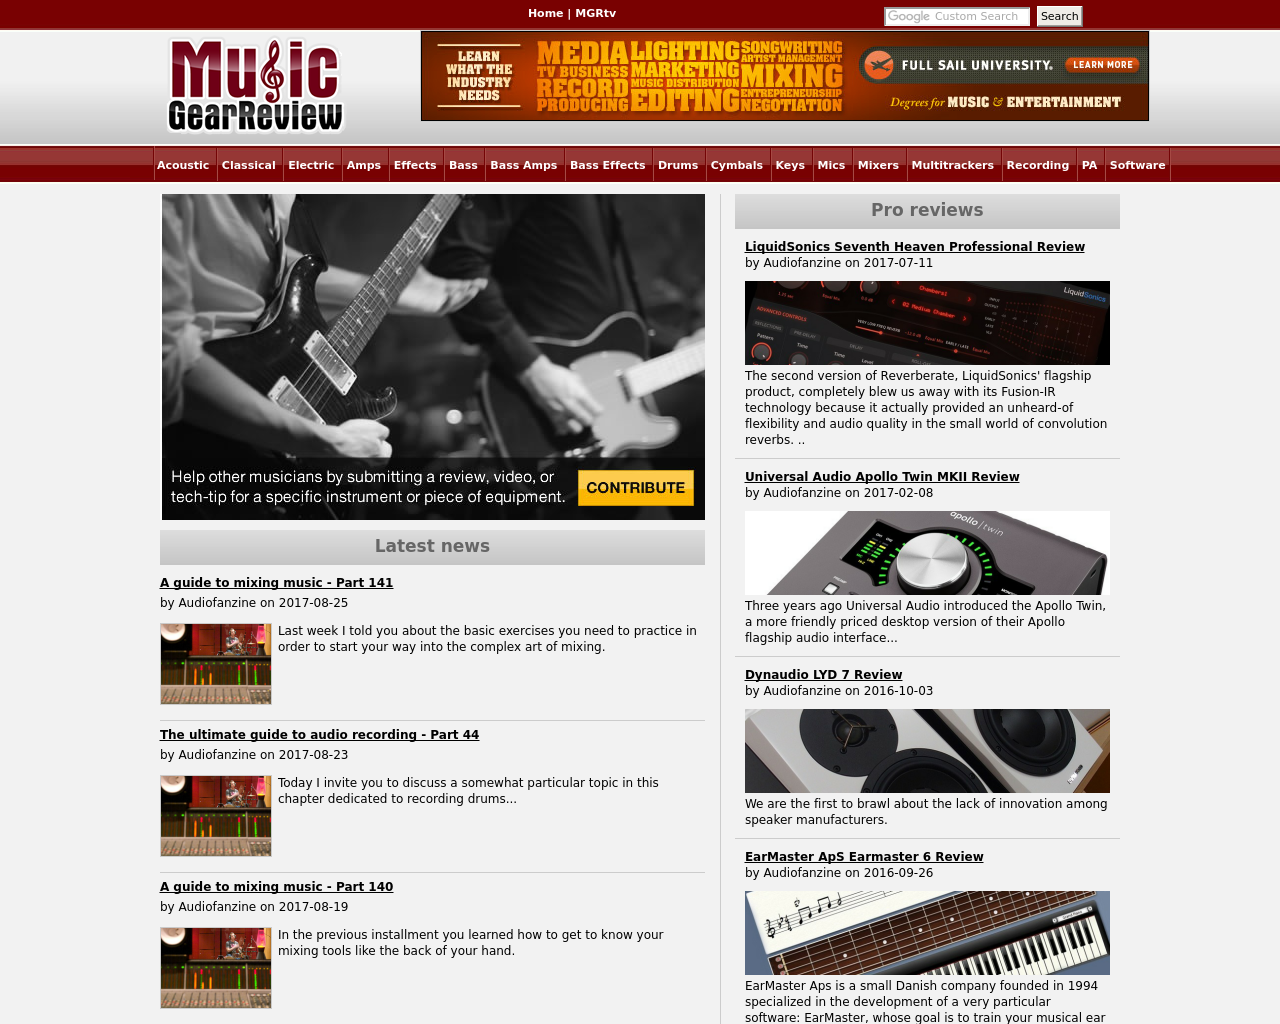 Music-GearReview-Advertising-Reviews-Pricing